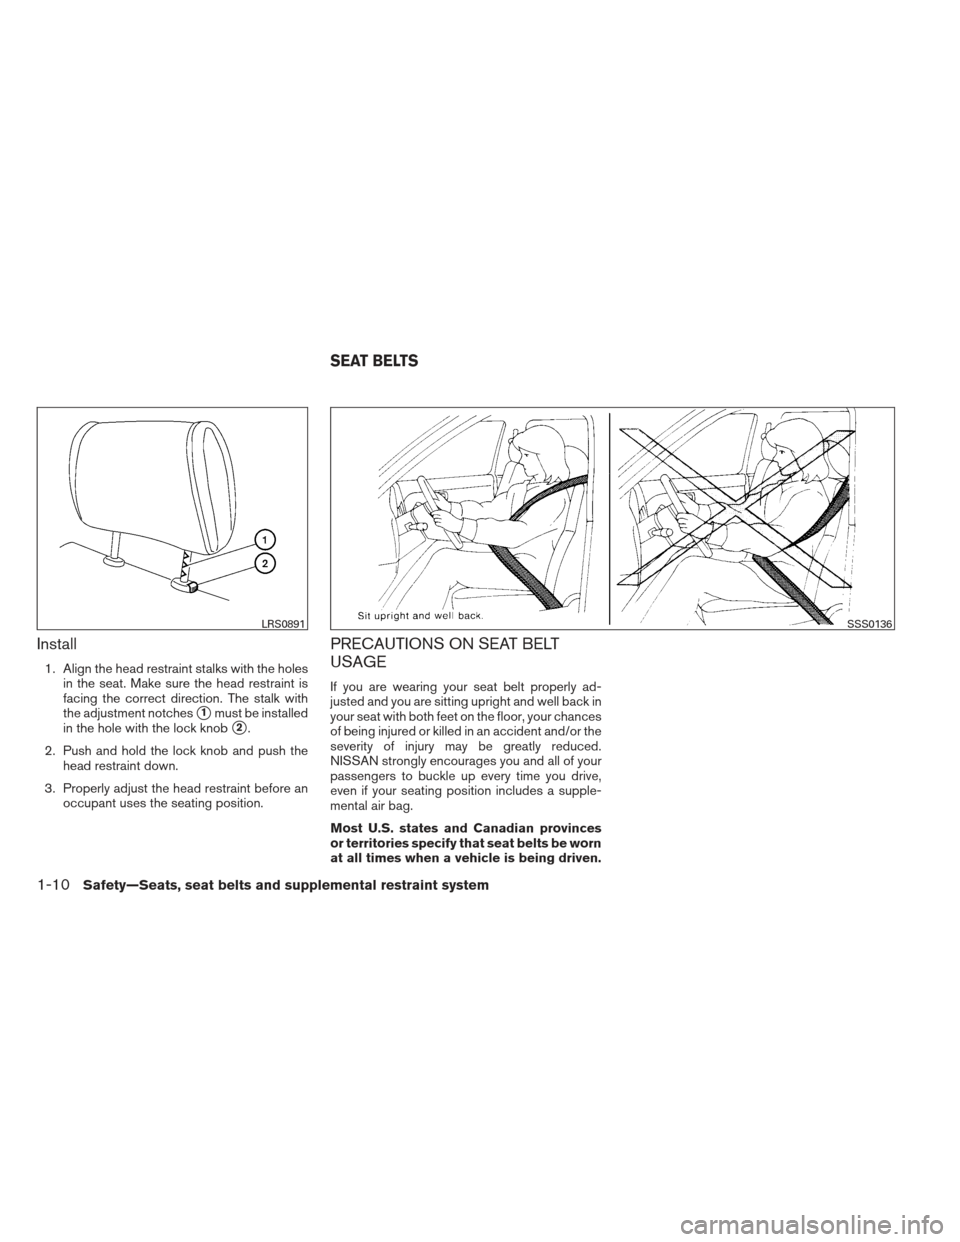 NISSAN ALTIMA 2013 L33 / 5.G Owners Manual Install 1. Align the head restraint stalks with the holesin the seat. Make sure the head restraint is facing the correct direction. The stalk with the adjustment notches 1must be installed in the hol